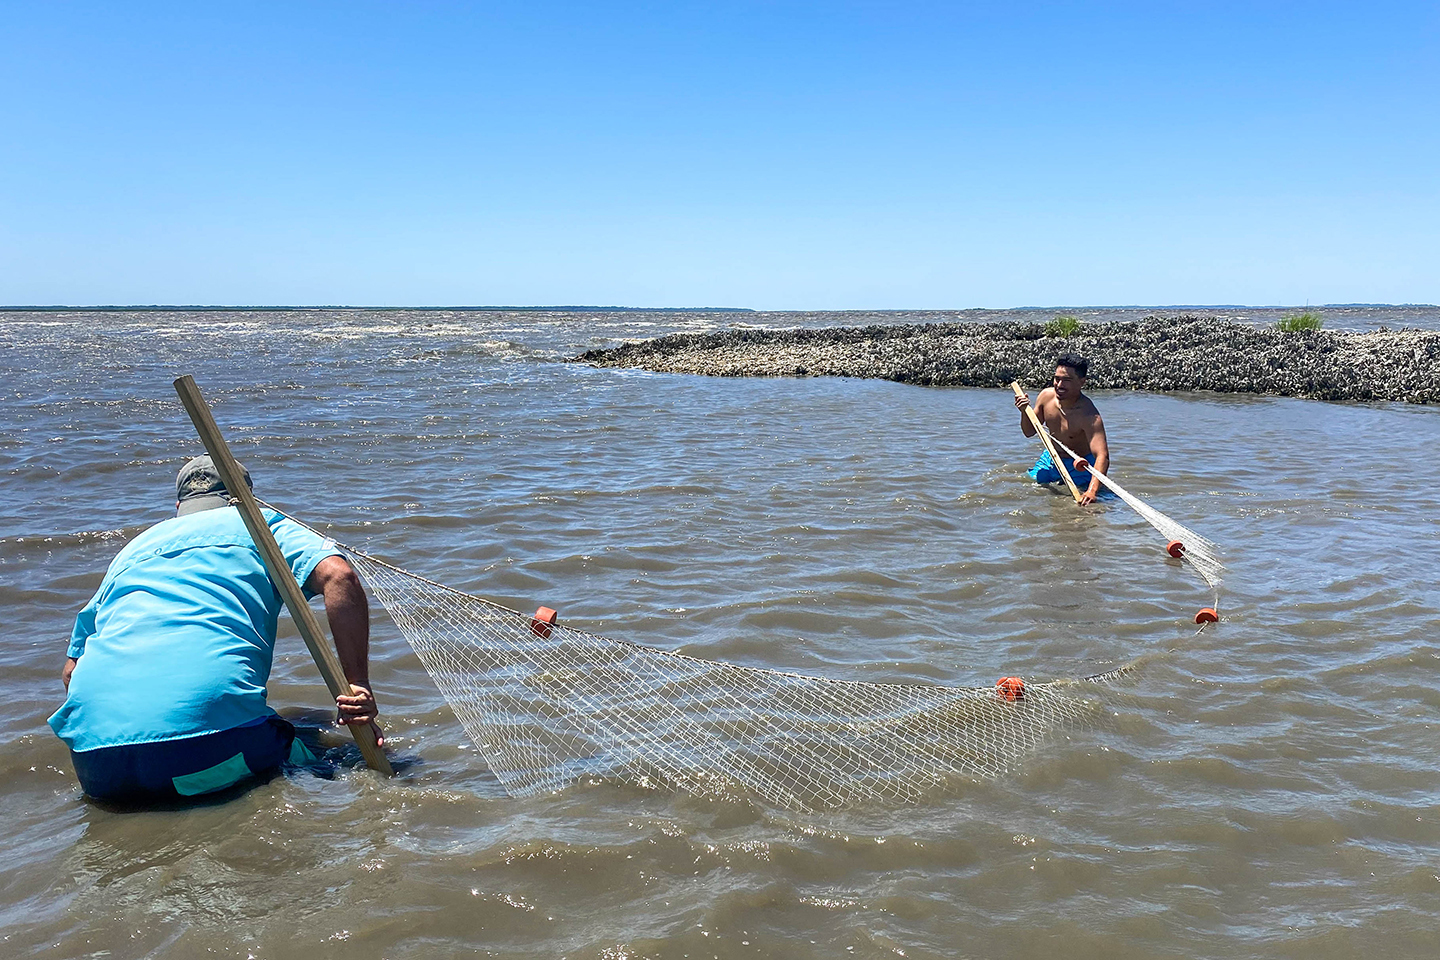 Two students stand in shallow water with a fishing net